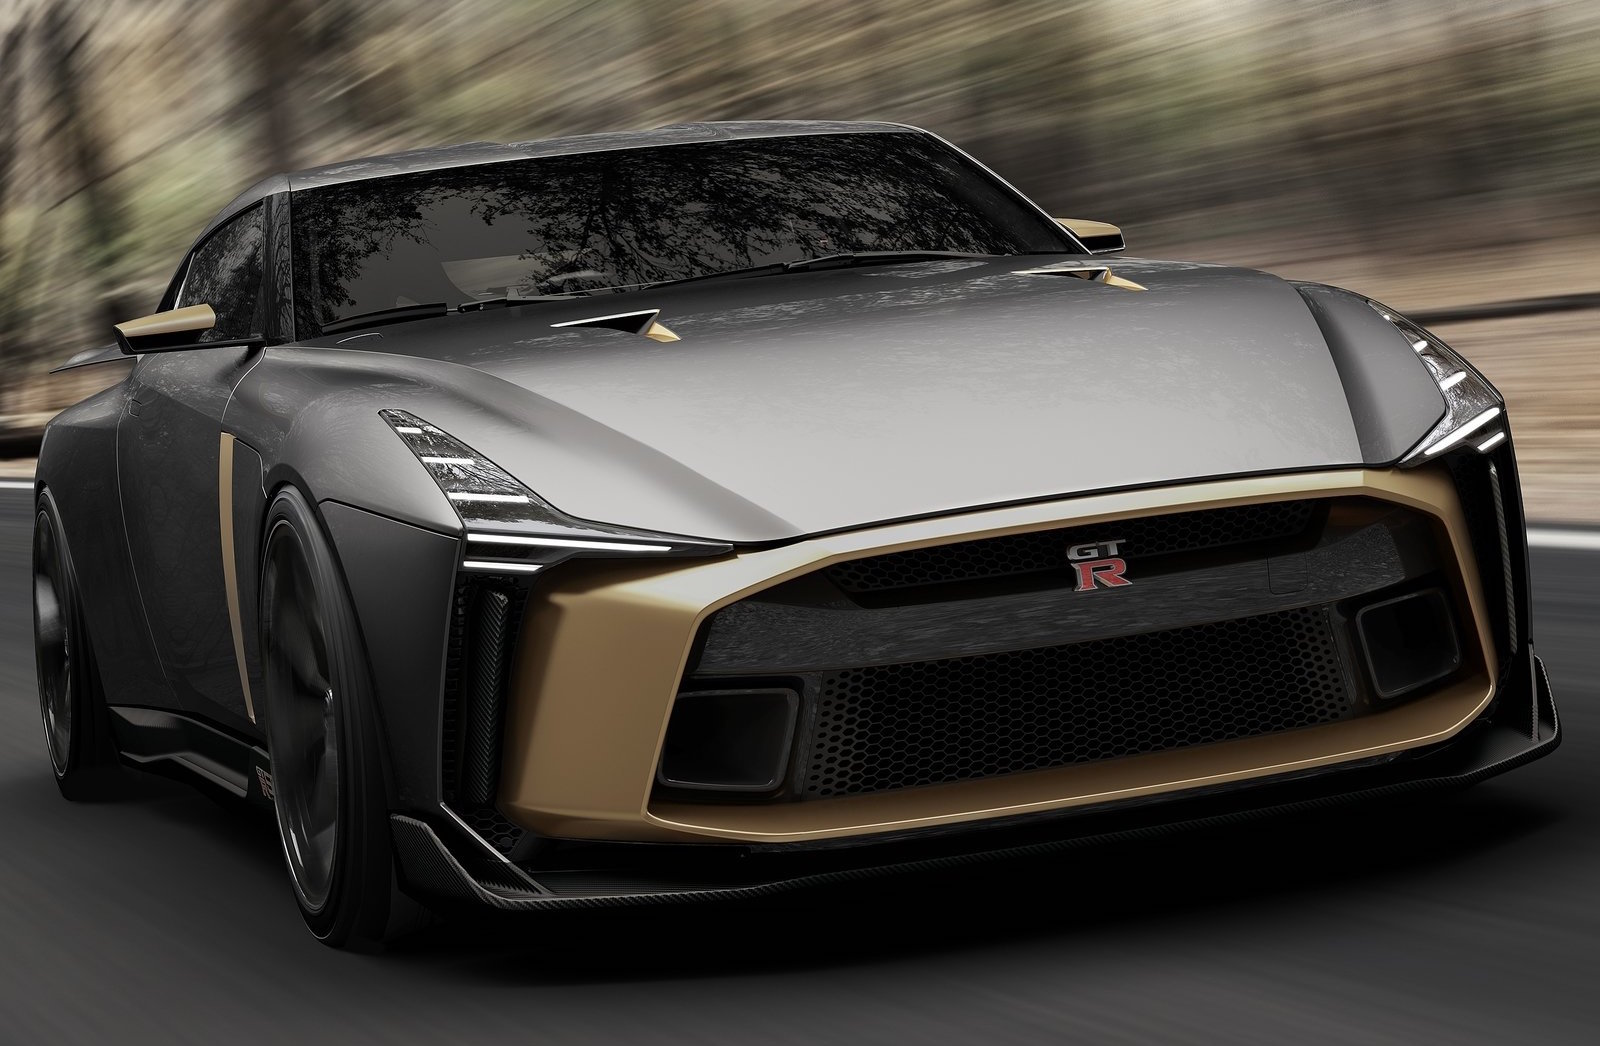 Next Nissan GT-R to be fastest supercar in the world?